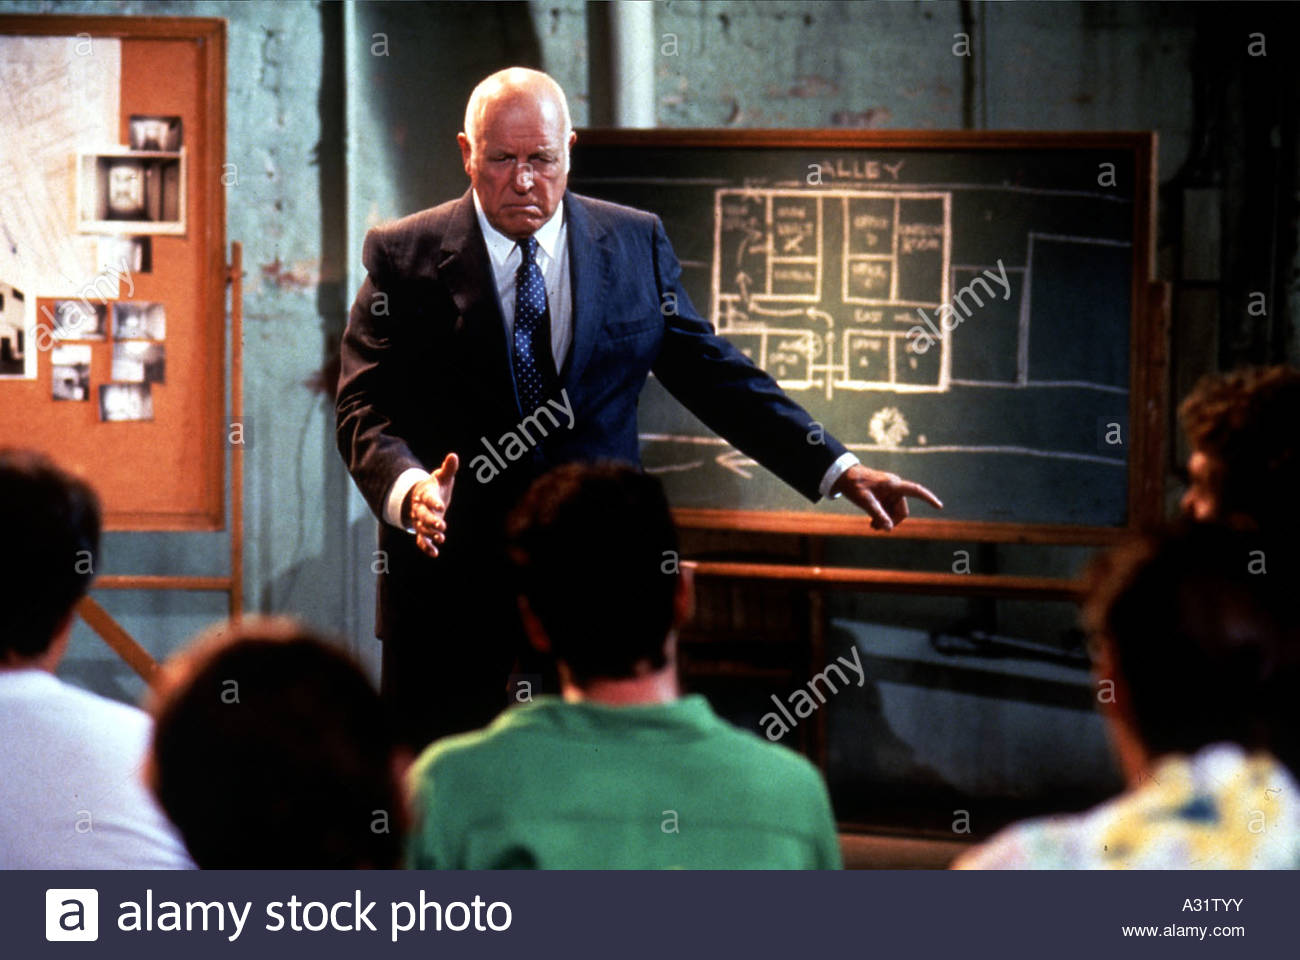 RESERVOIR DOGS 1991 Rank film with  Lawrence Tierney as Joe Cabot - Stock Image